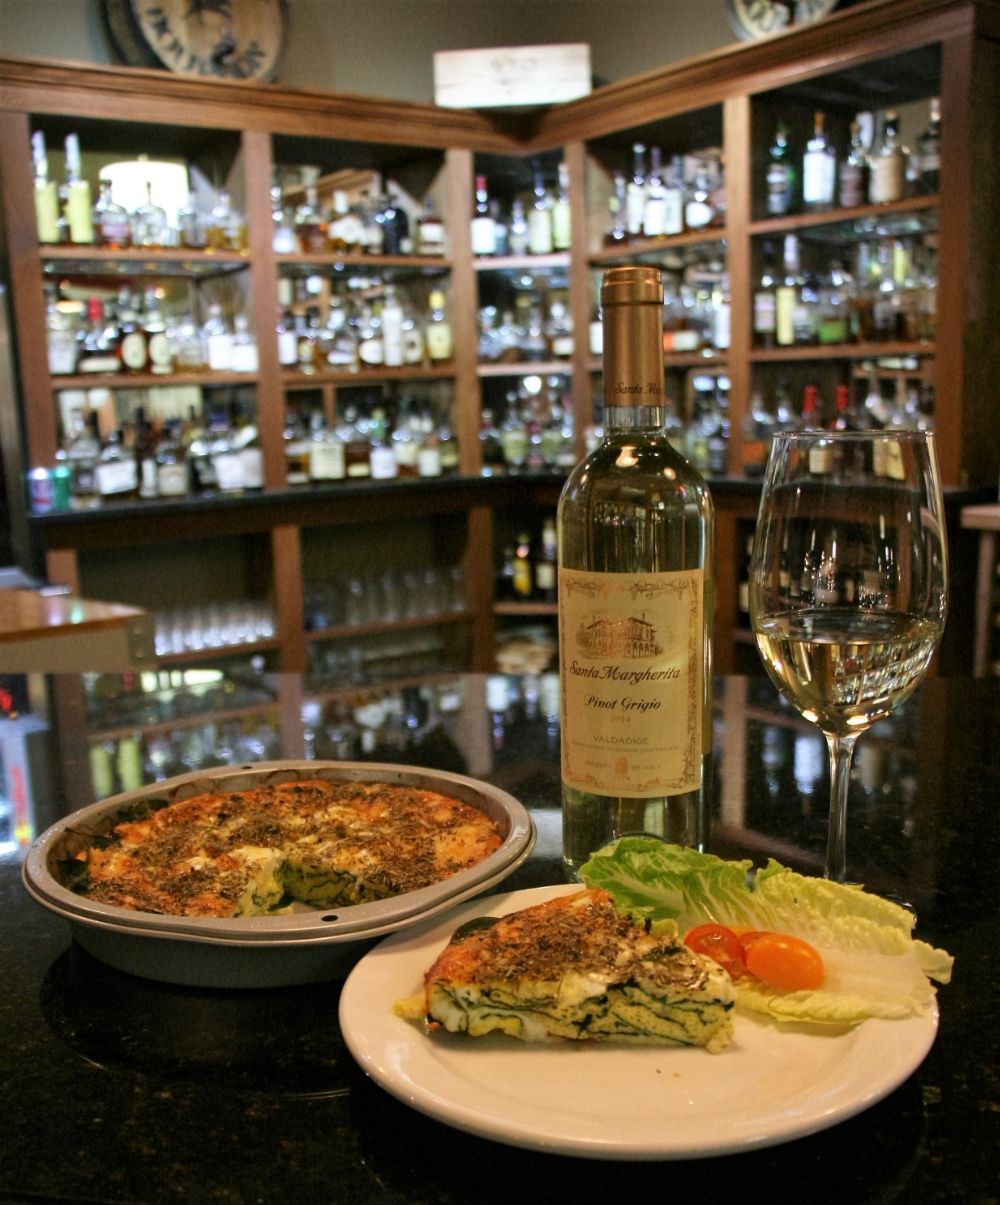 Gluten free Quiche Florentine pairs well with the fine selection of white wines we have.